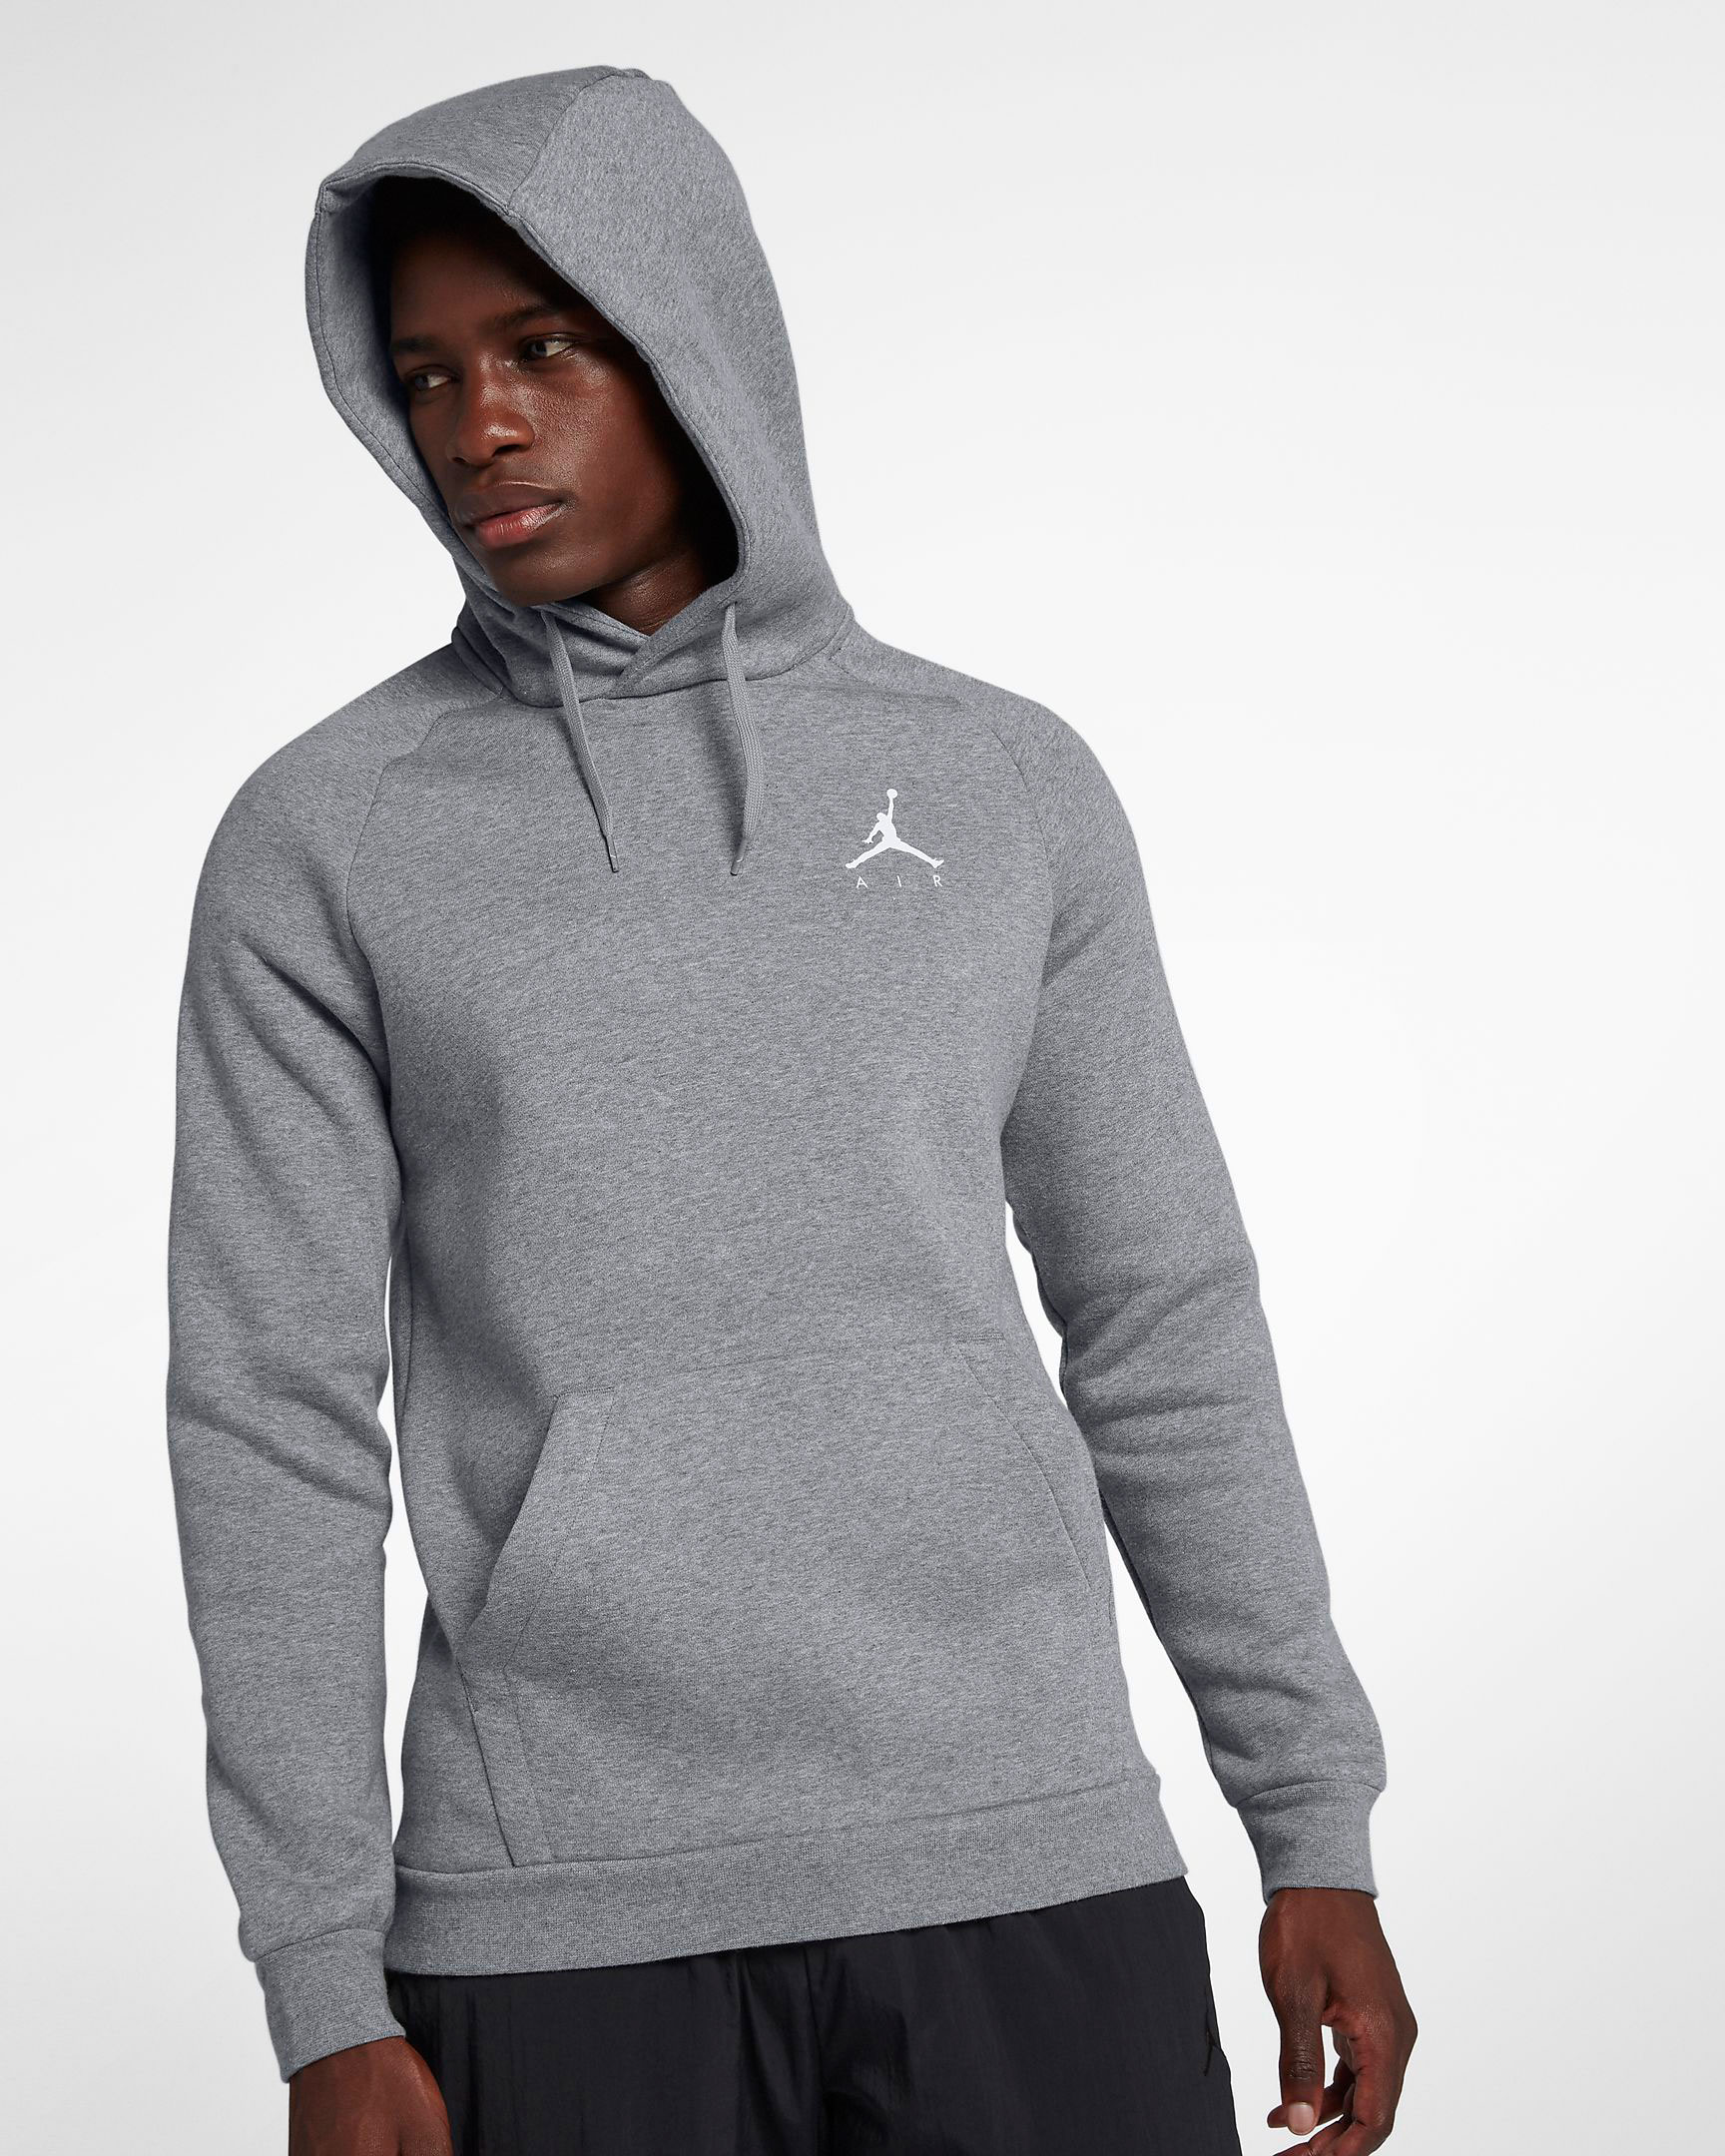 air-jordan-12-dark-grey-white-hoodie-match